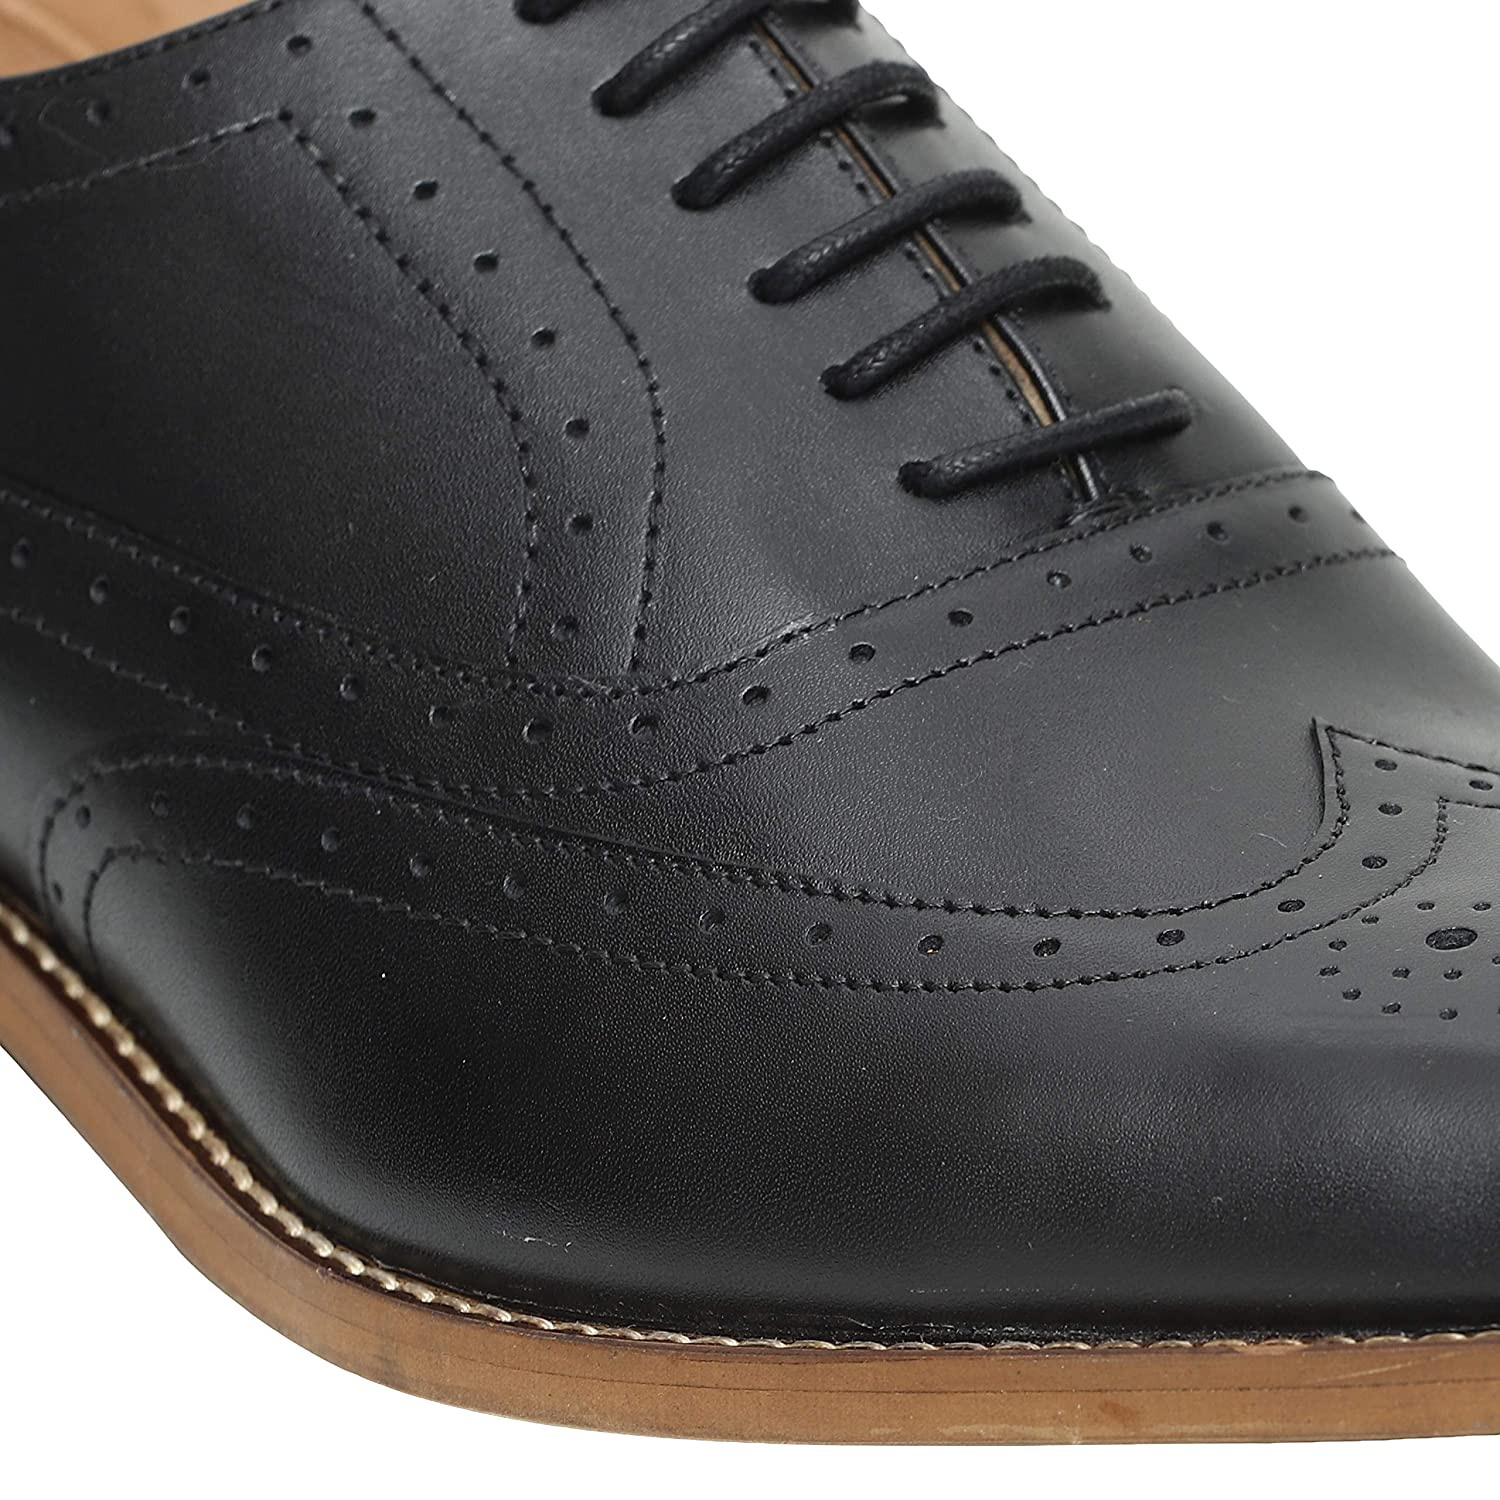 Amazon.com: Urbane Shoes Co - Zapatos de piel de vaca para ...